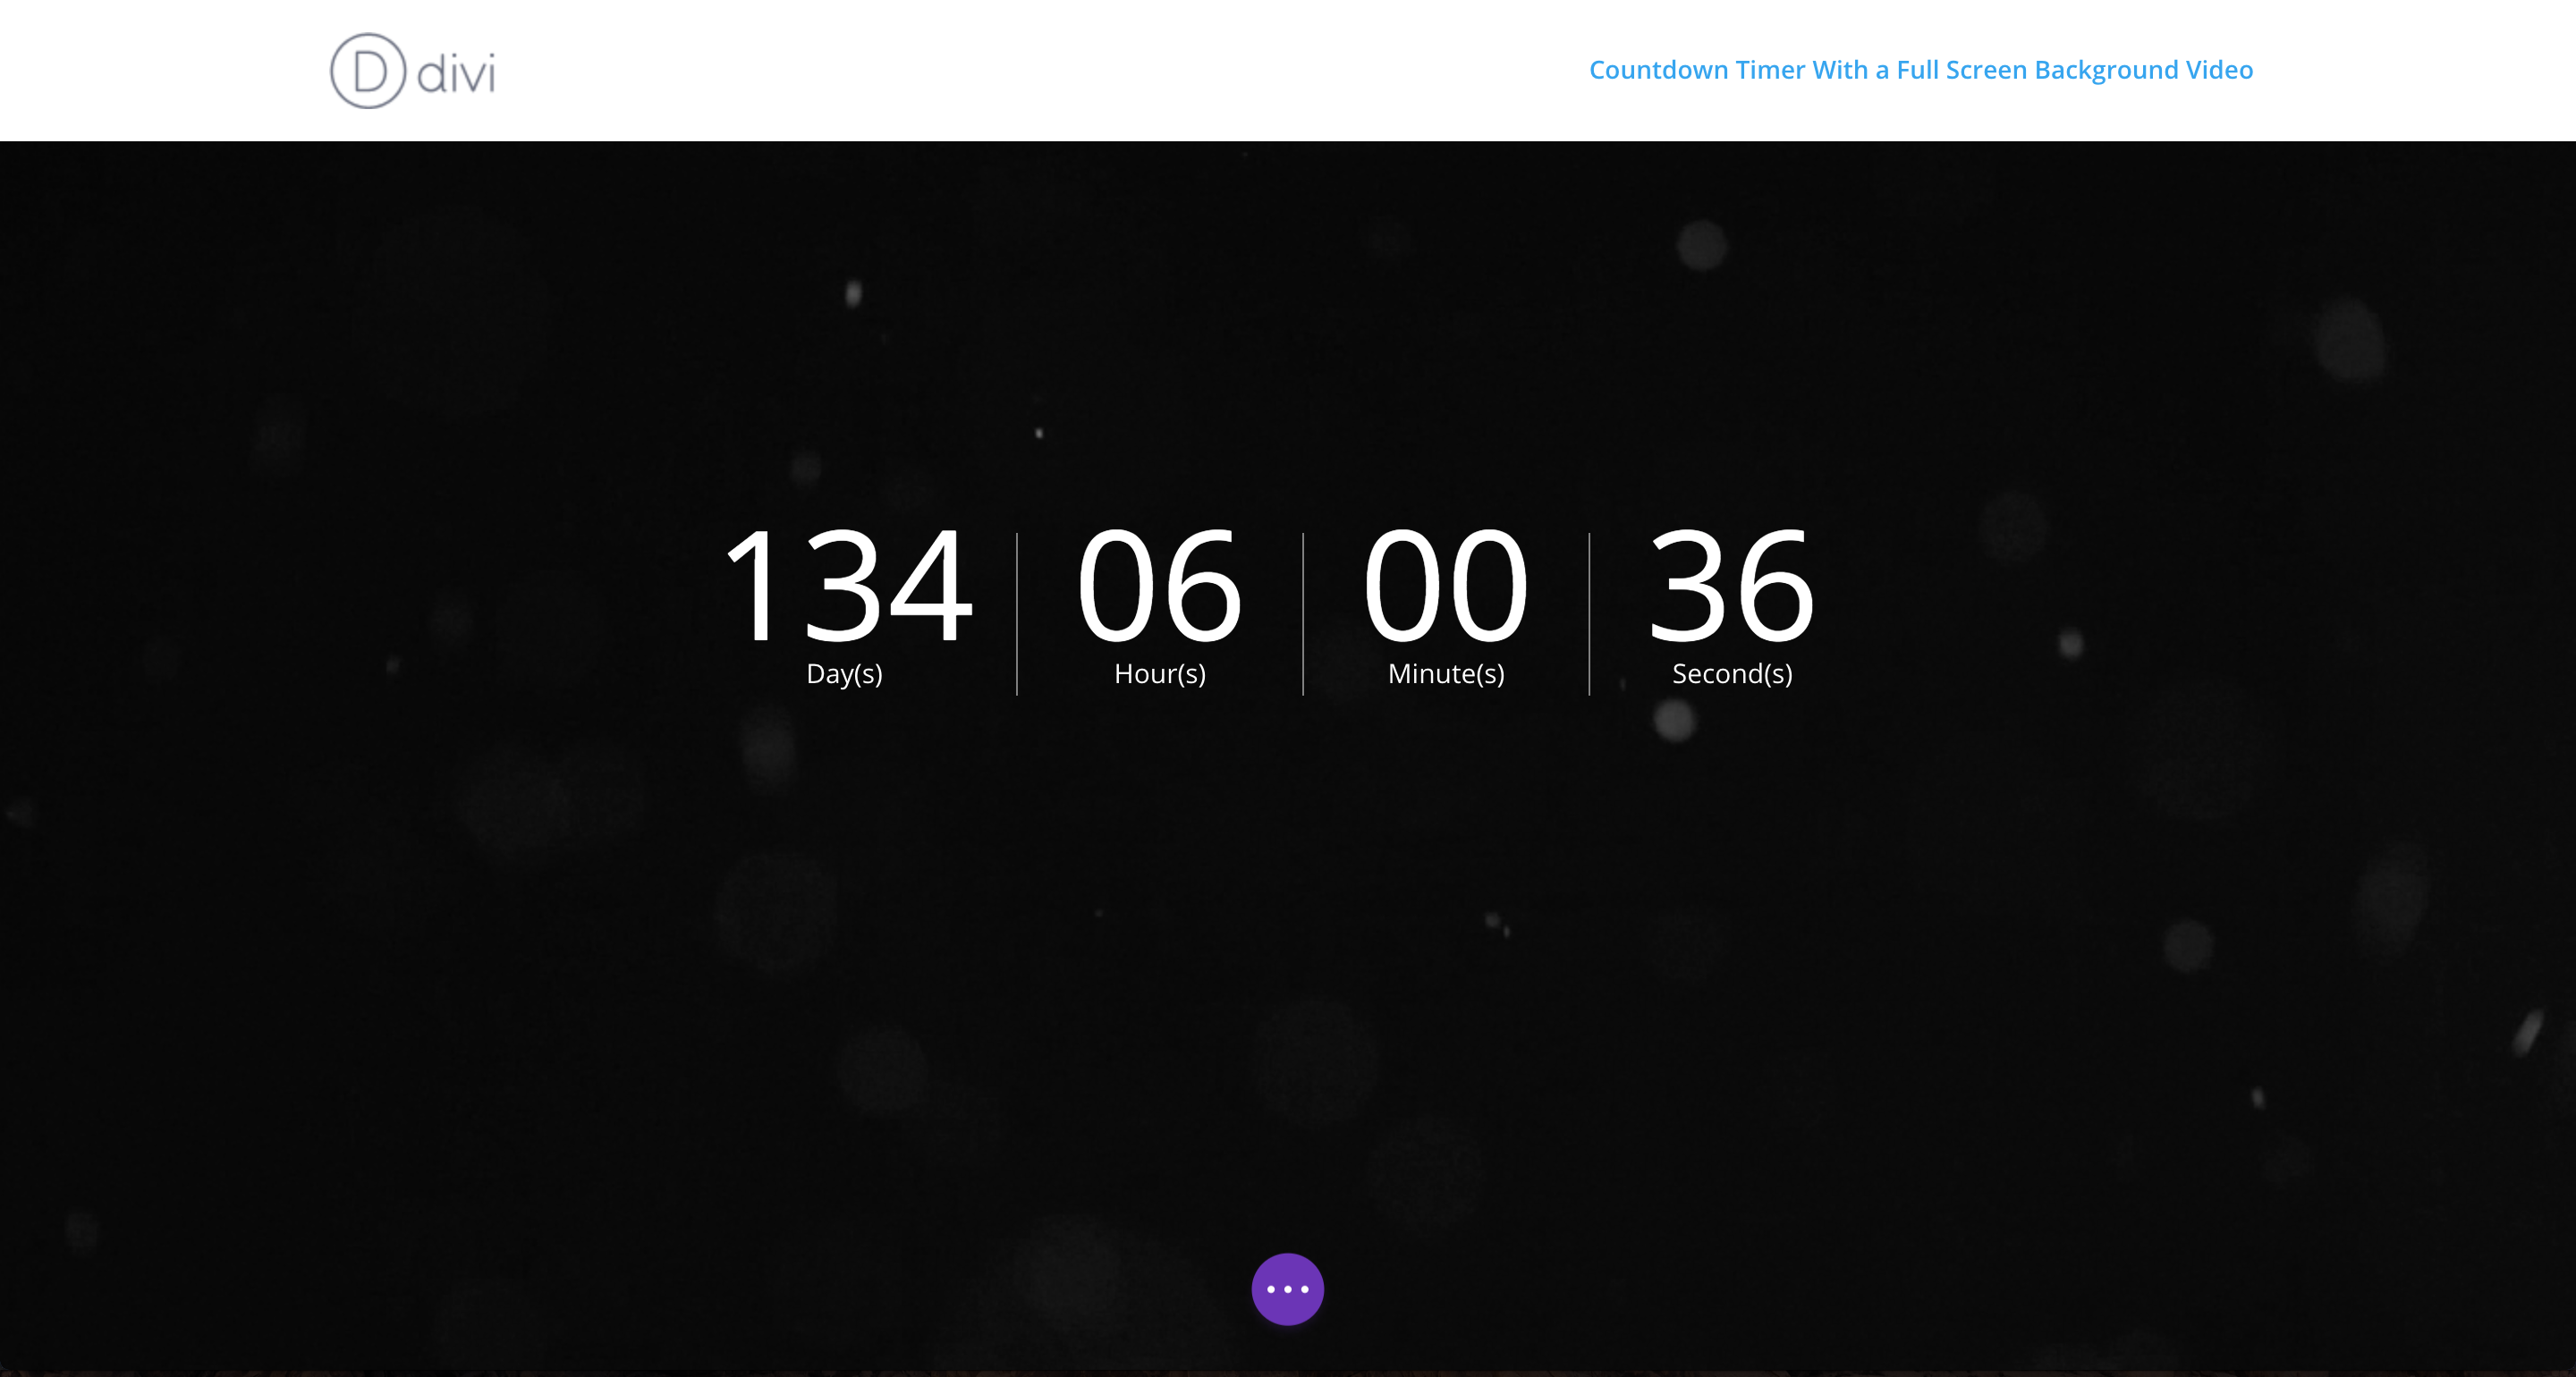 countdown-timer-with-full-screen-background-video-completed